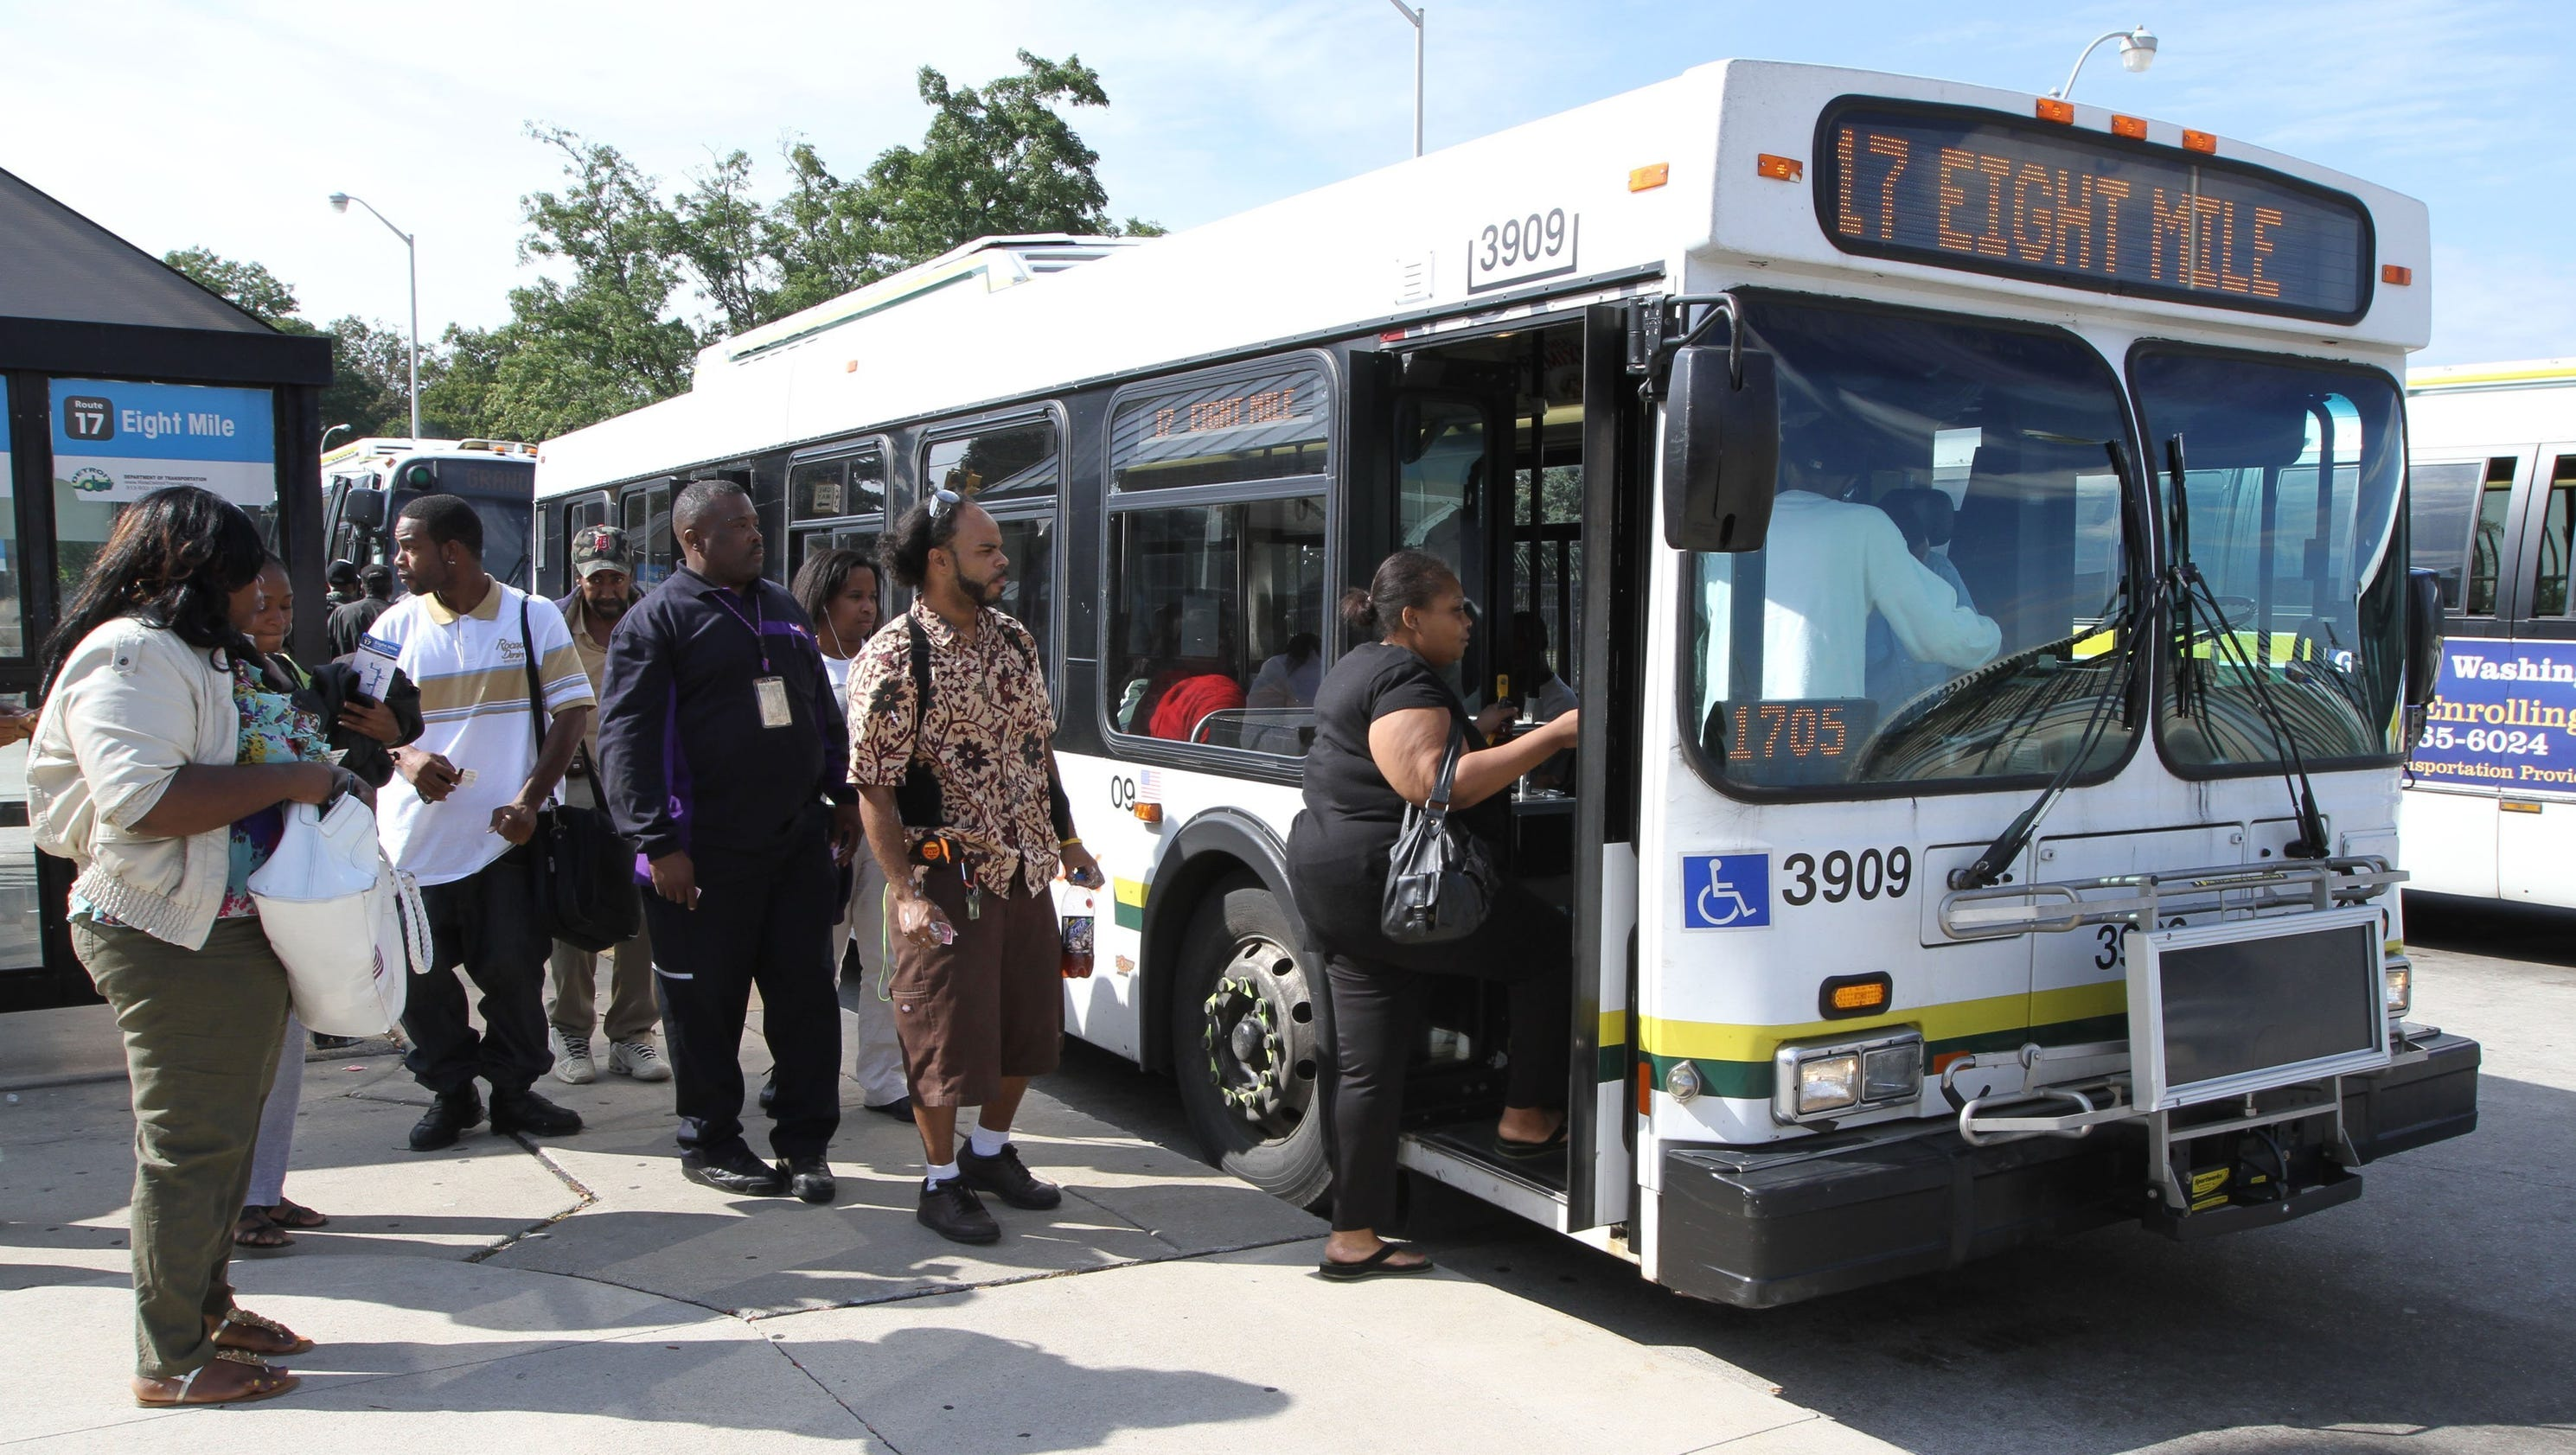 direct routes to eastern market on tap for ddot buses